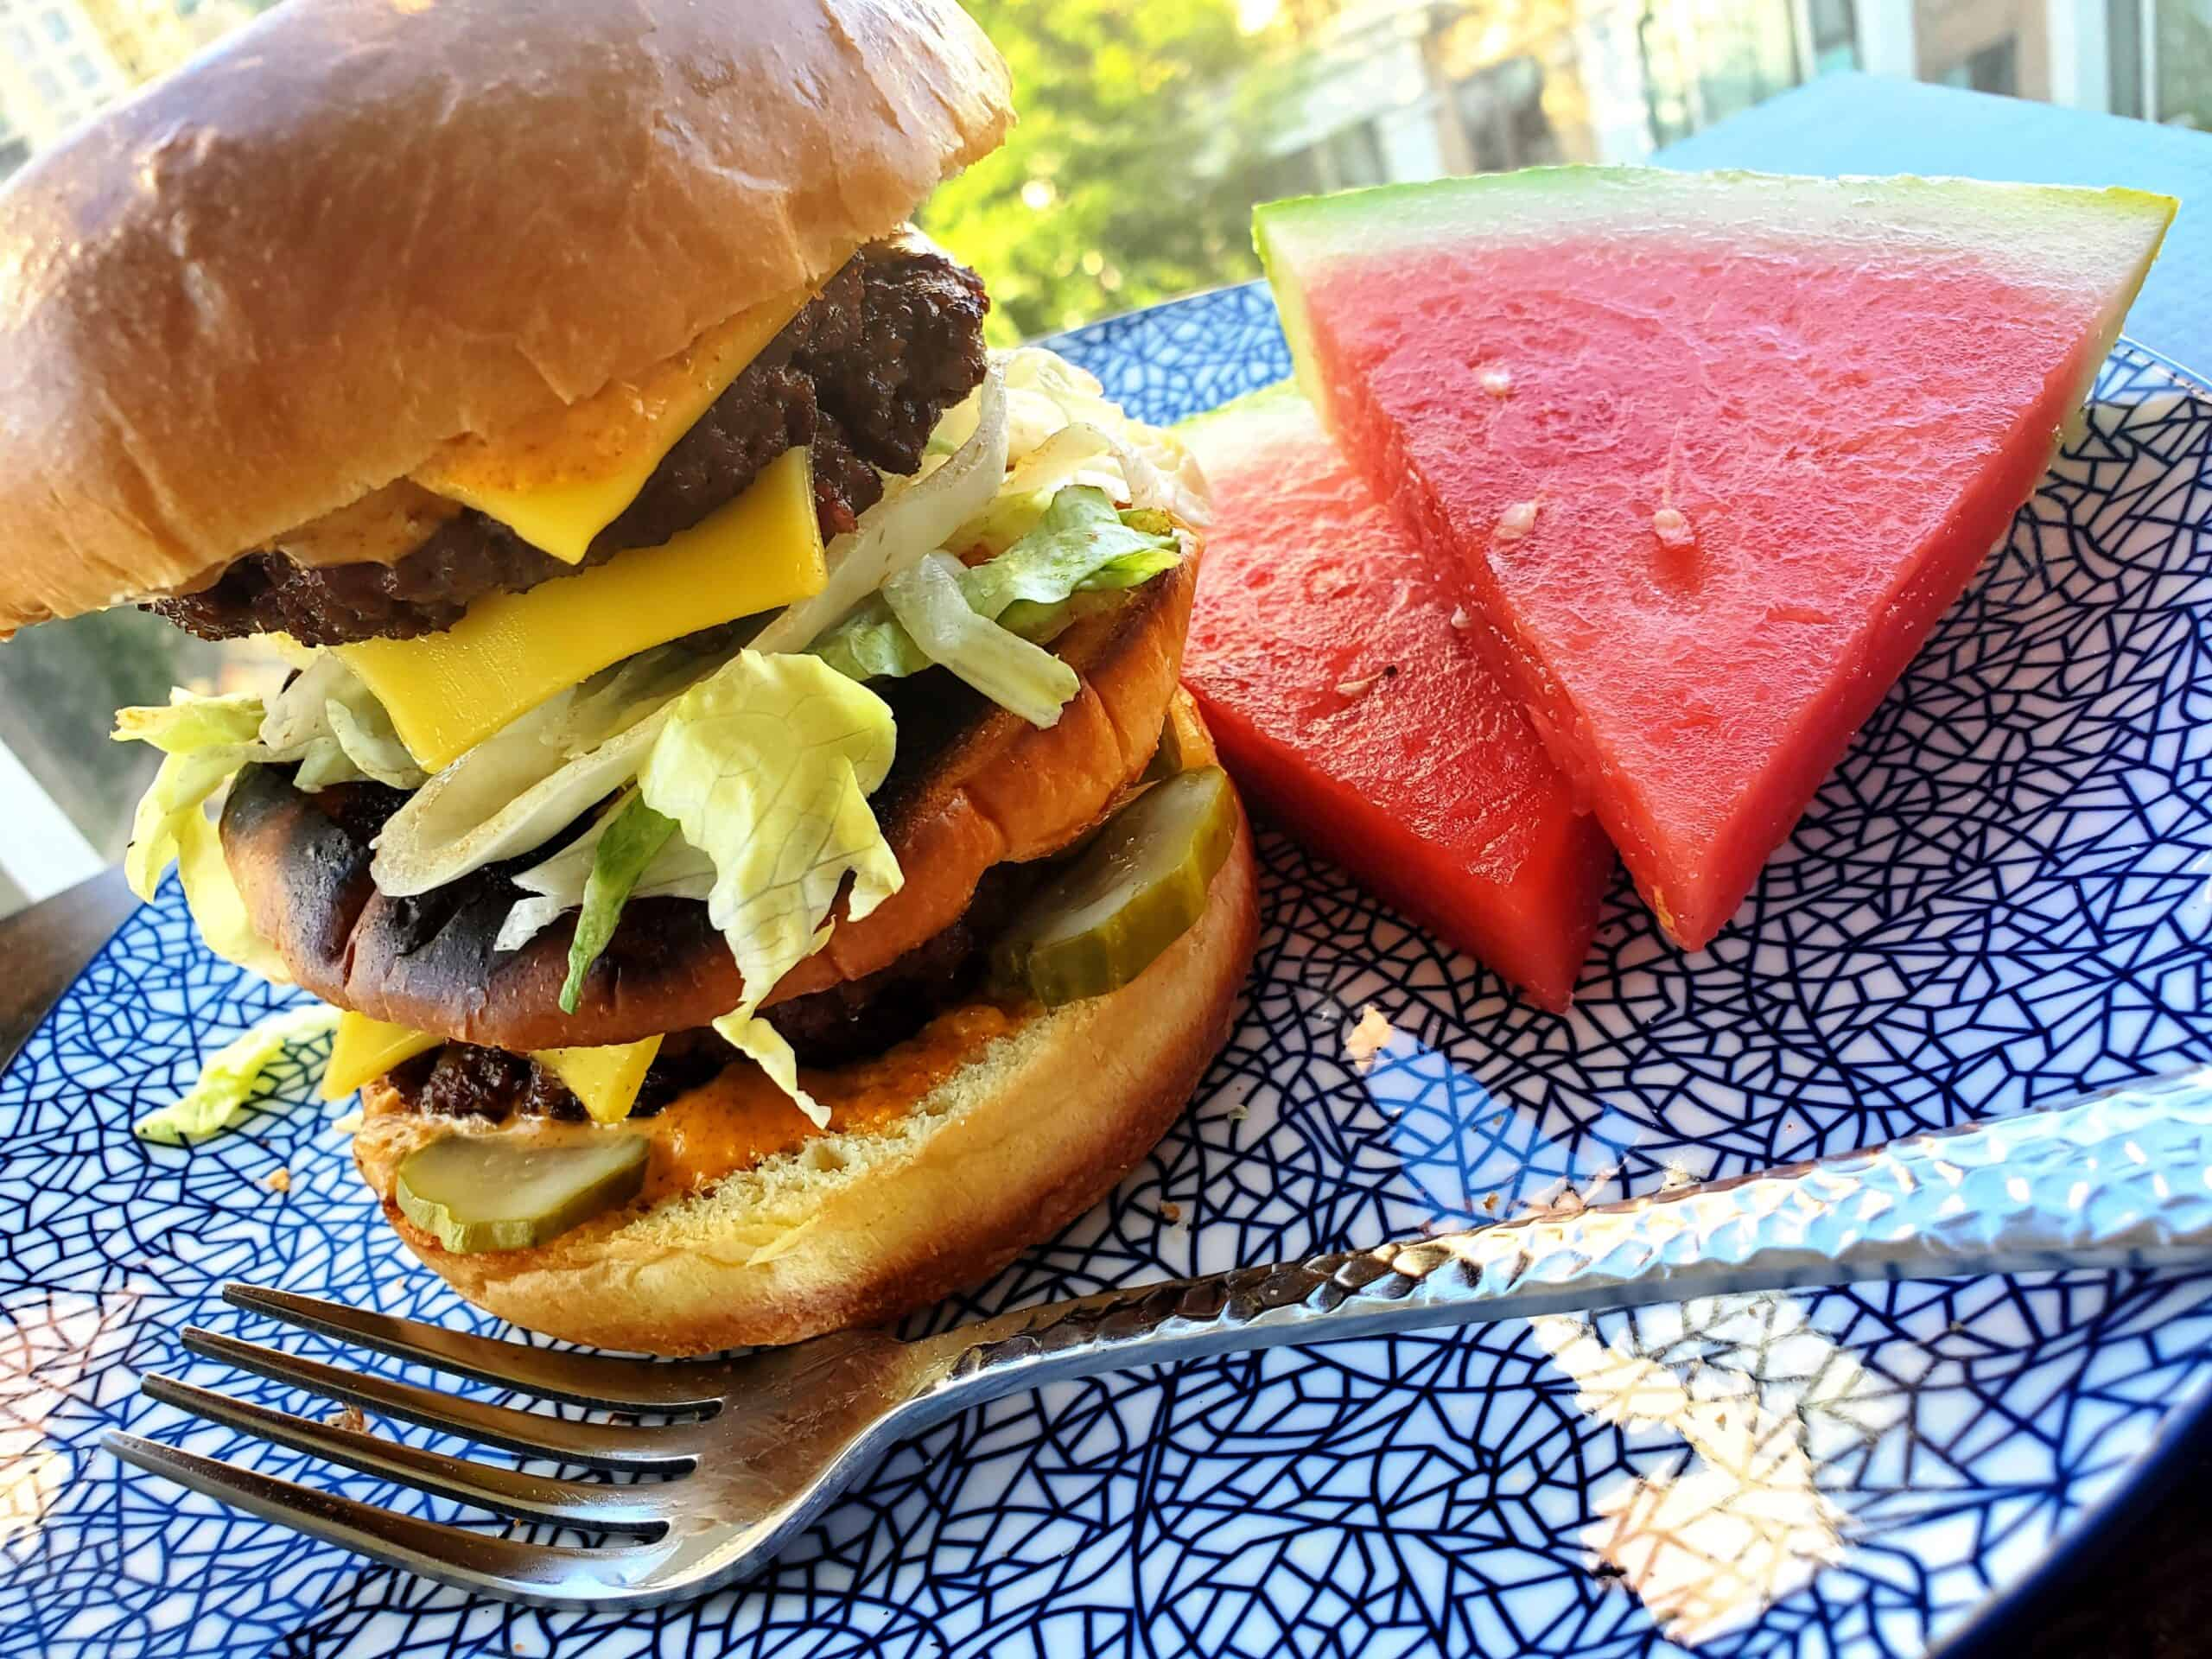 Perfecting the Patio Picnic with Ecofriendly Drinks, Burgers & Grill